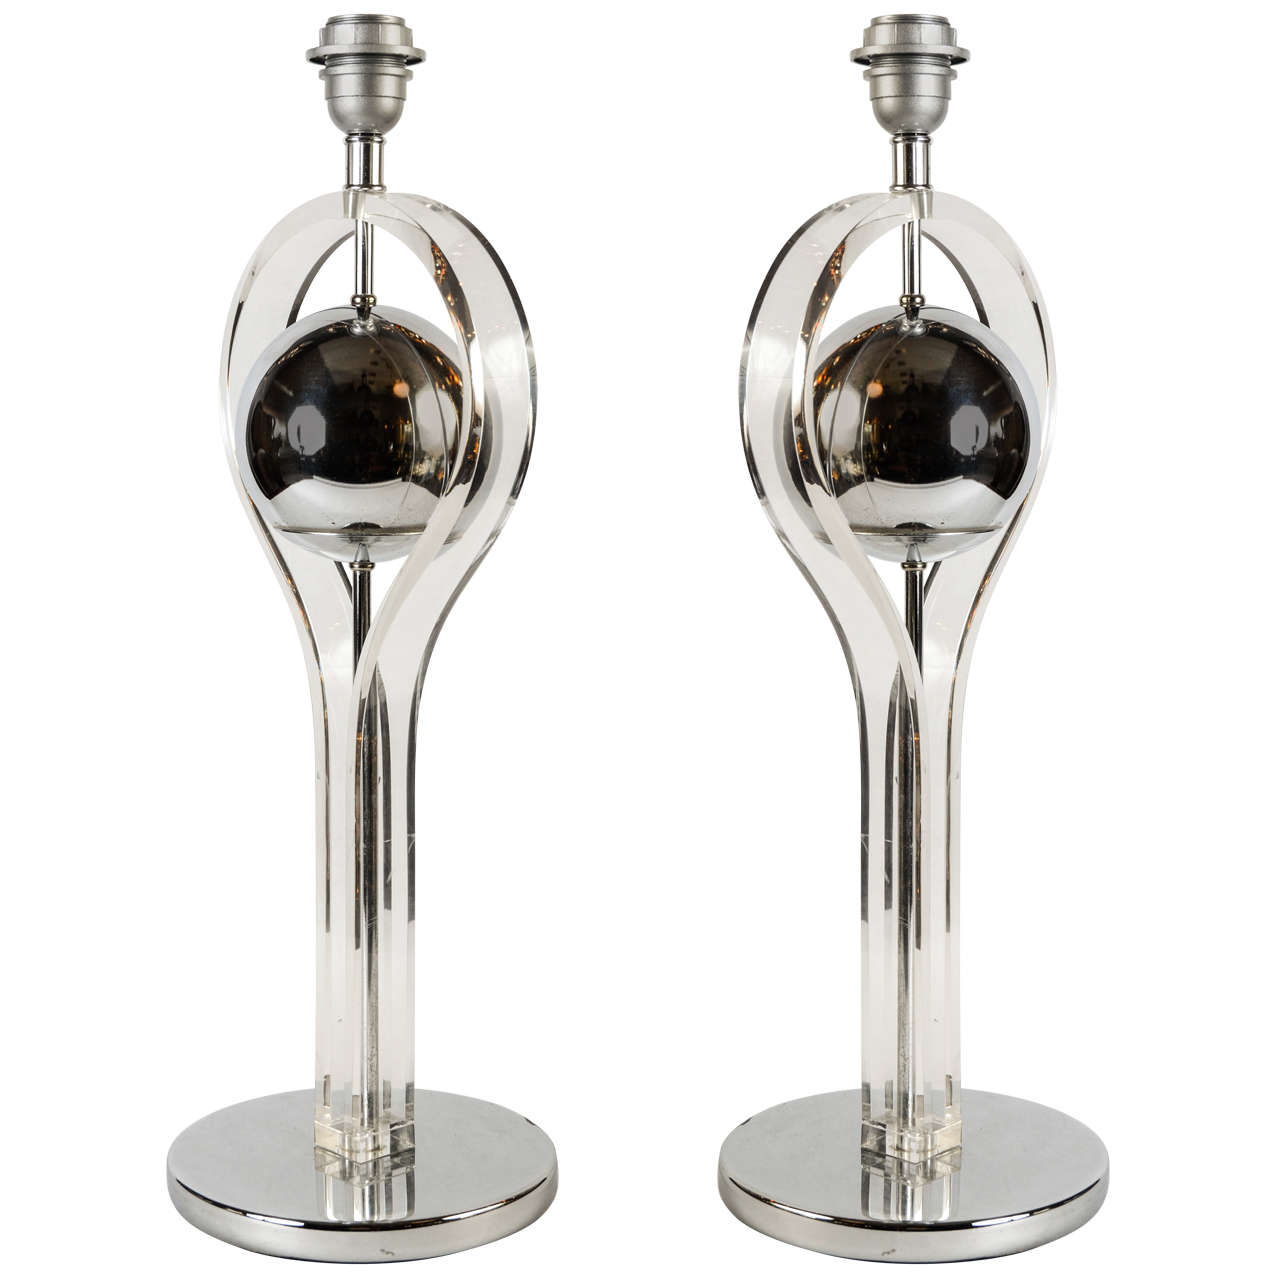 Pair of 1970s Space Age Table Lamps